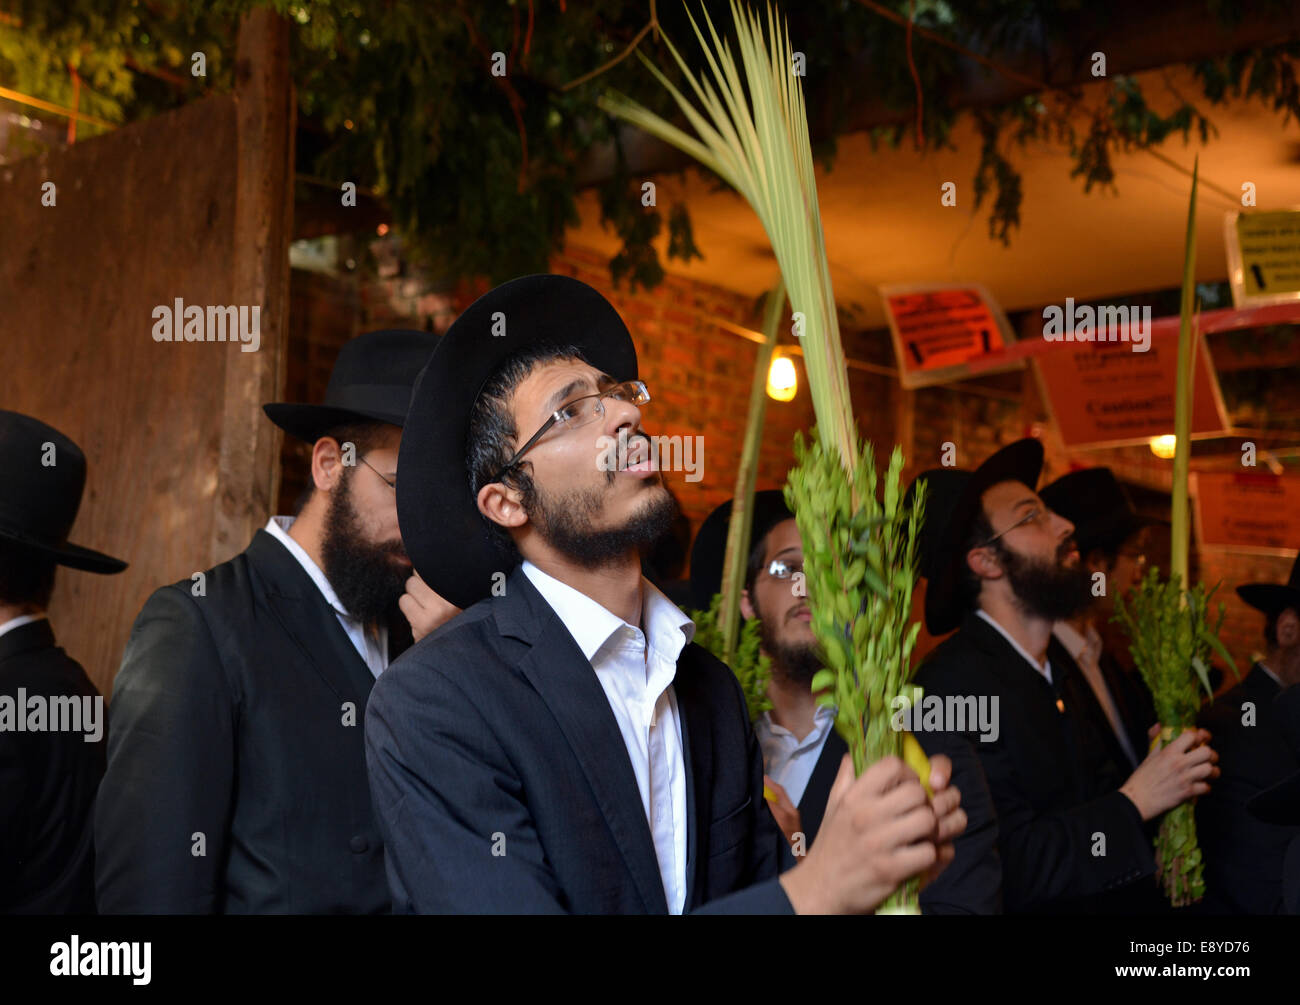 Religious Jewish men blessing the esrog and Lulv in a Sukkah  in Brooklyn, NY during the Jewish holiday of Sukkot. - Stock Image